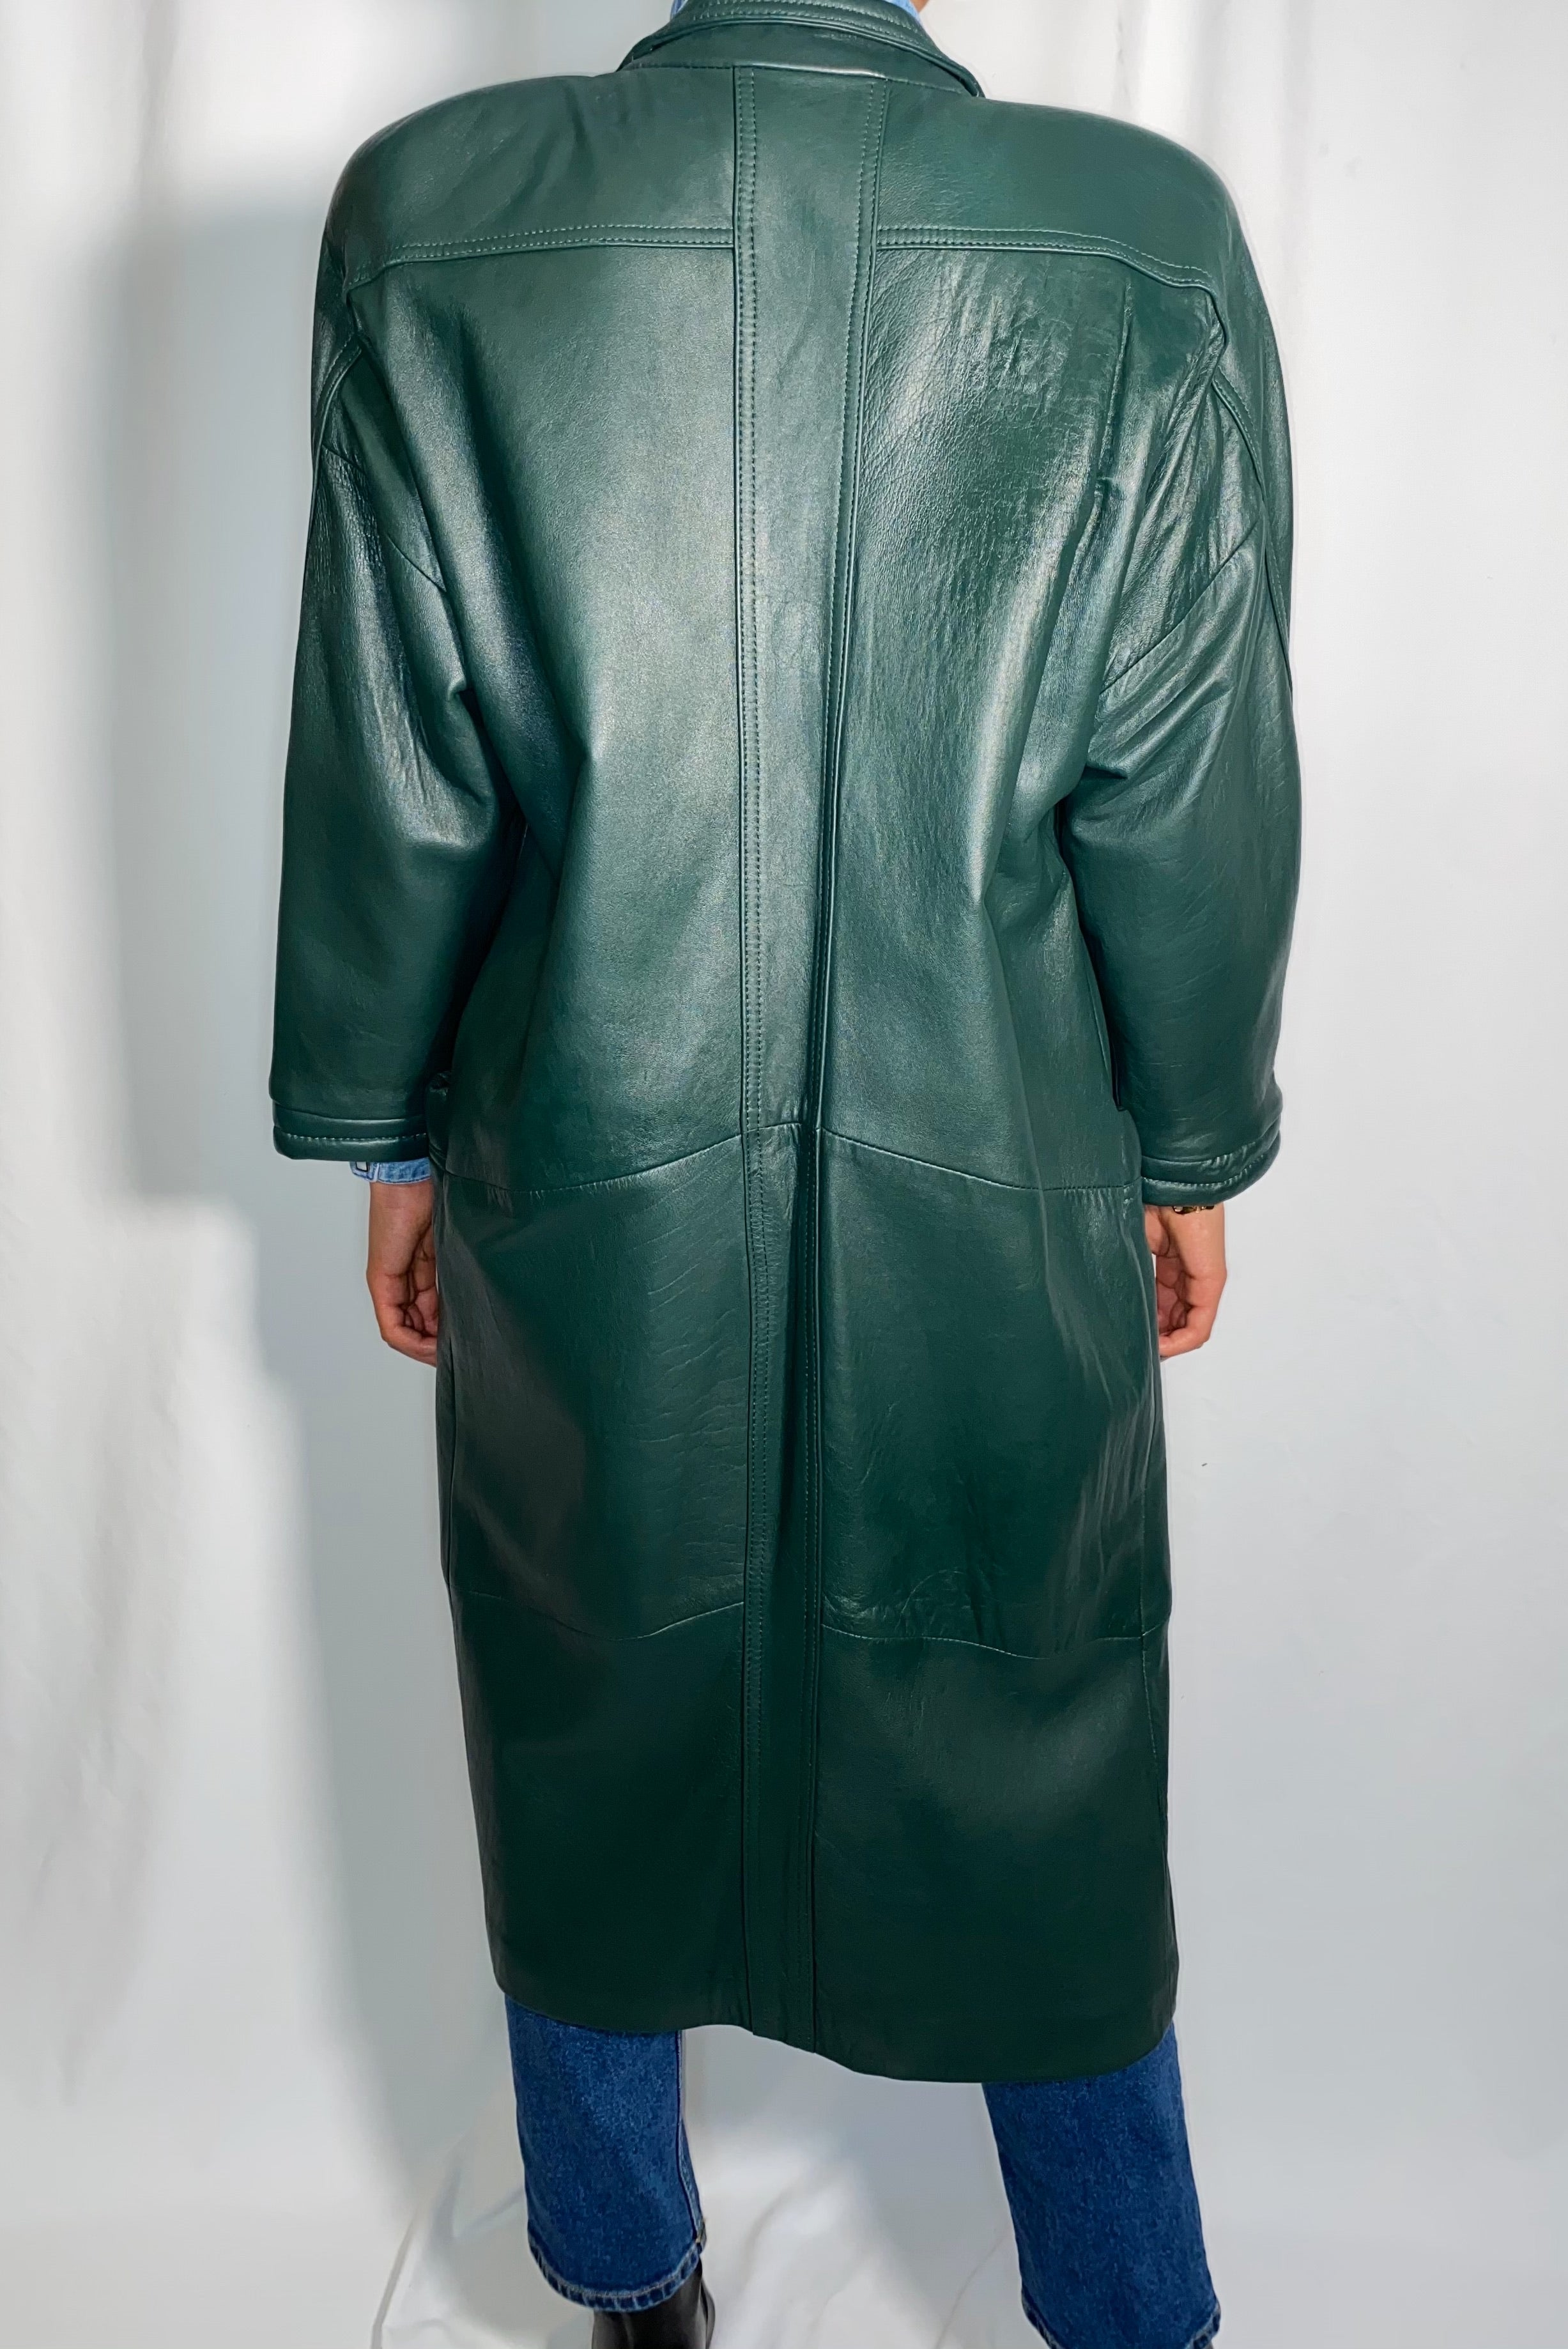 Vintage Winlit Special Editions Leather Coat (size medium)